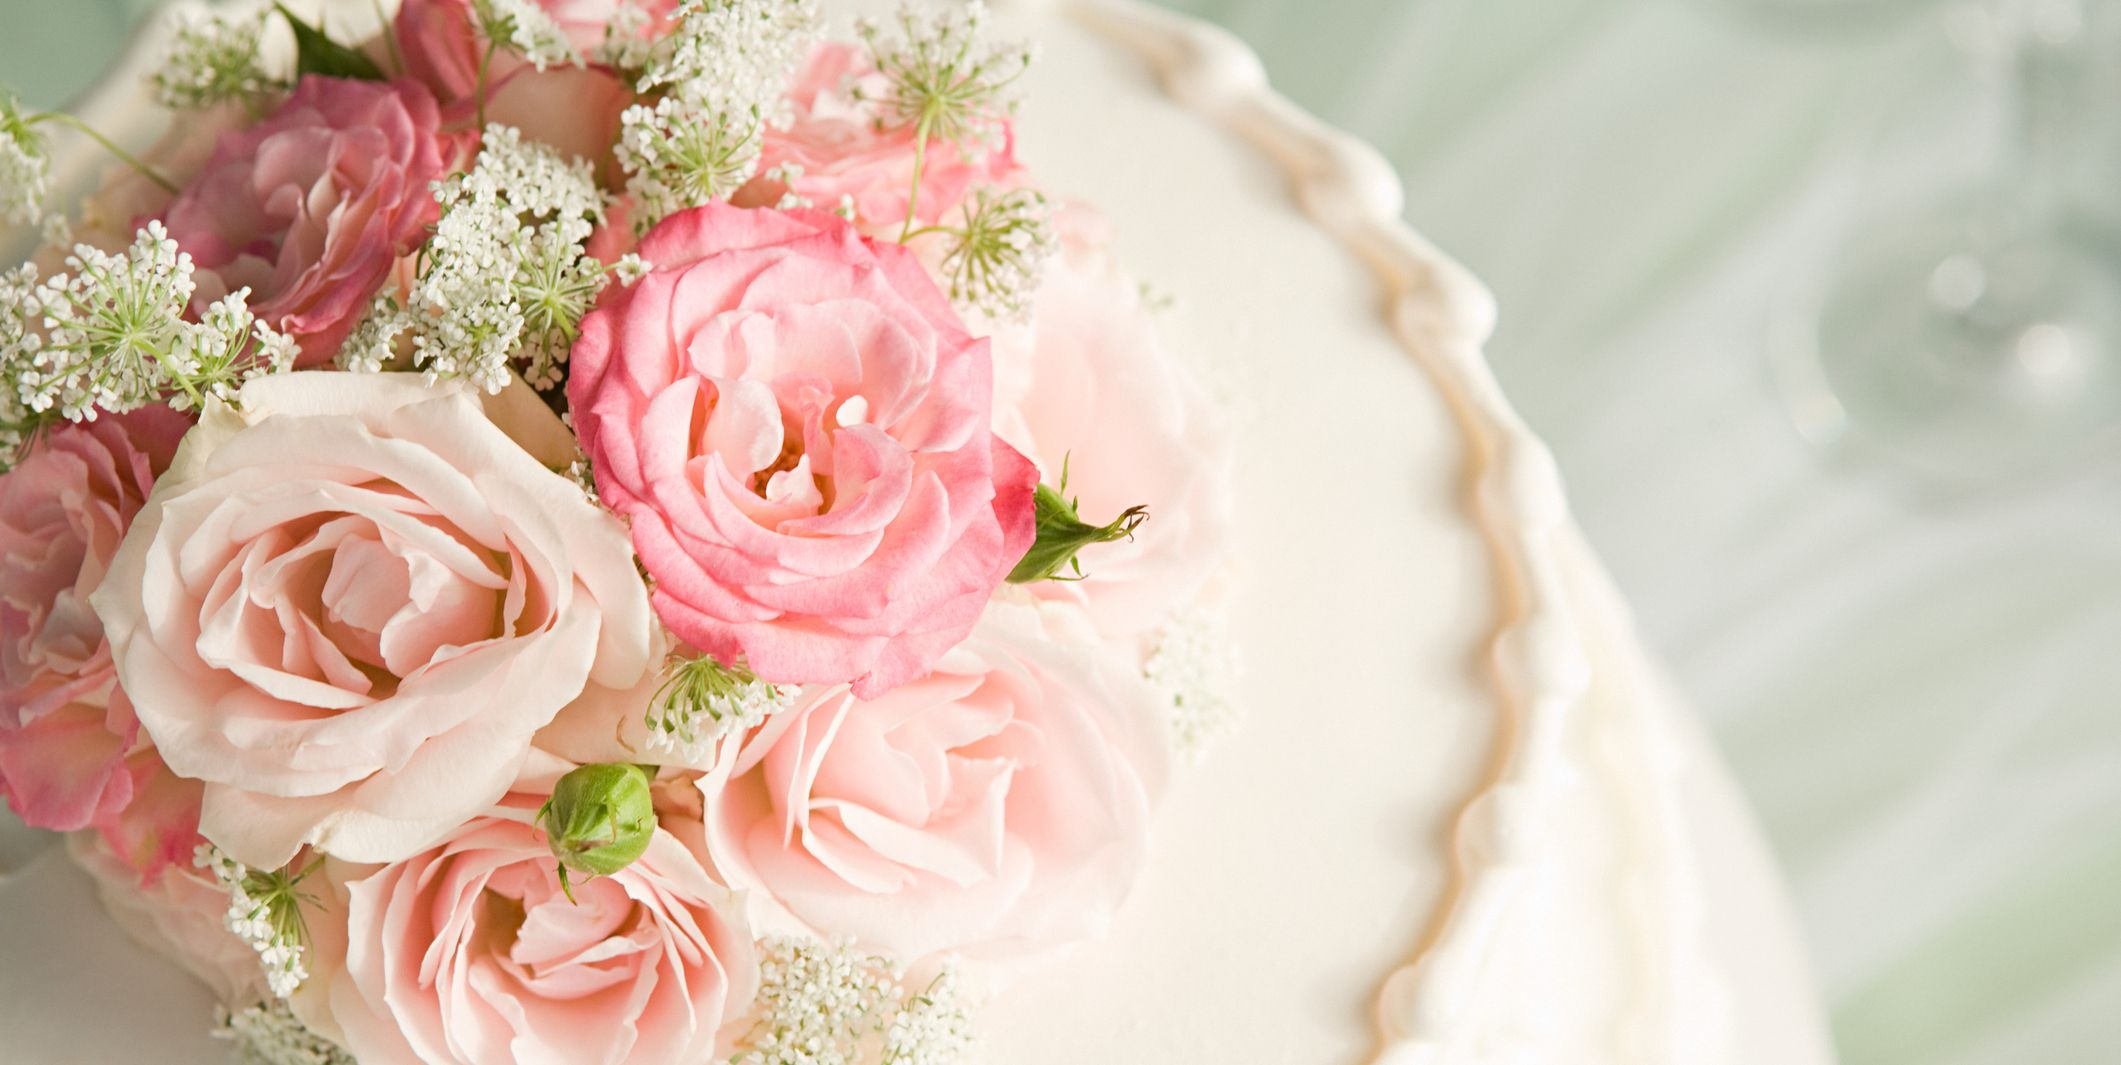 7 Wedding Cake Bakers Reveal the Worst Things They've Been Asked